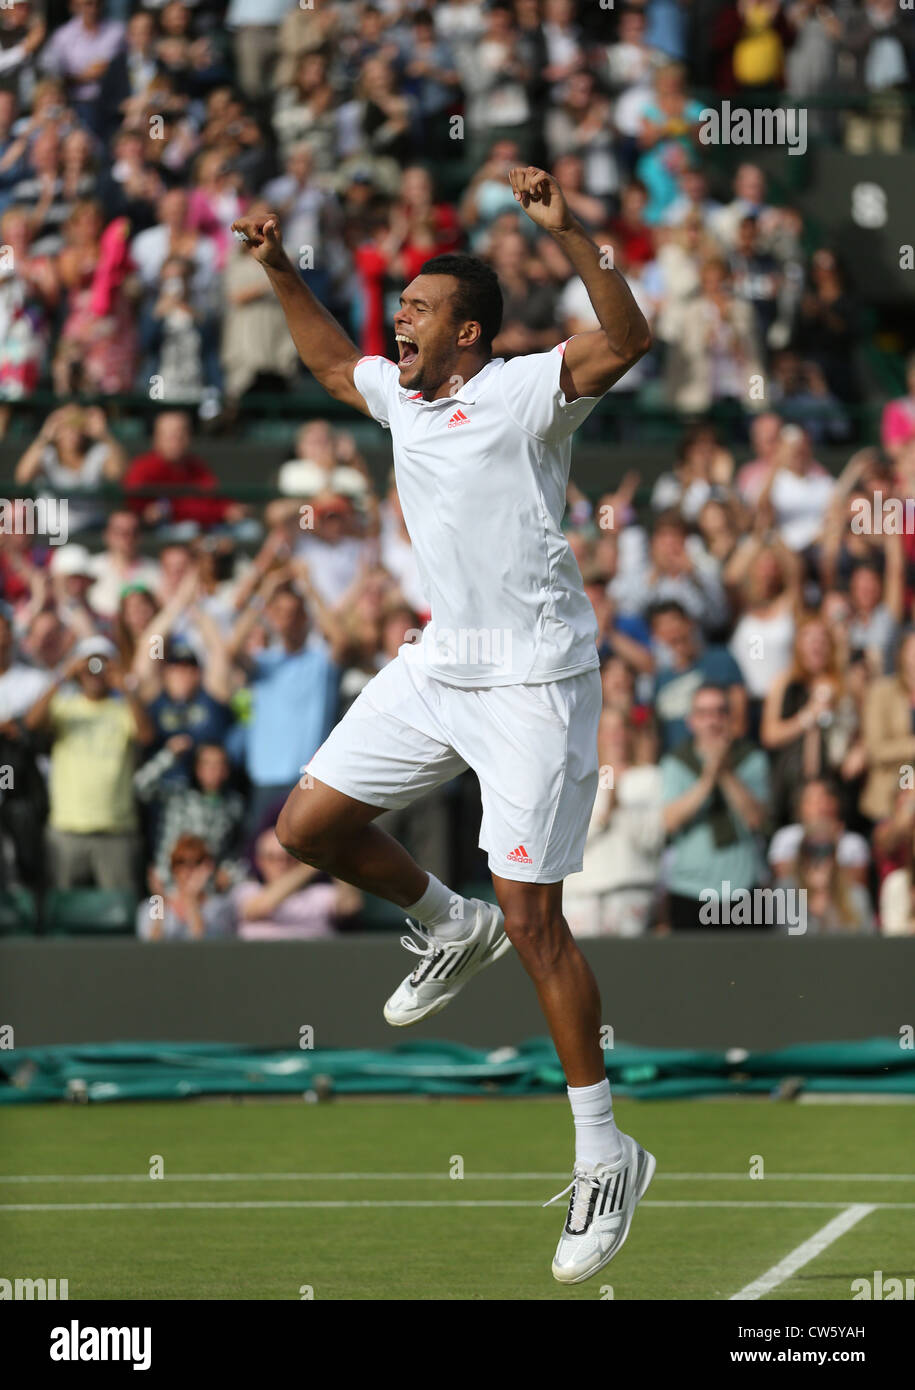 Jo-Wilfried Tsonga (FRA) celebrating his win at Wimbledon - Stock Image